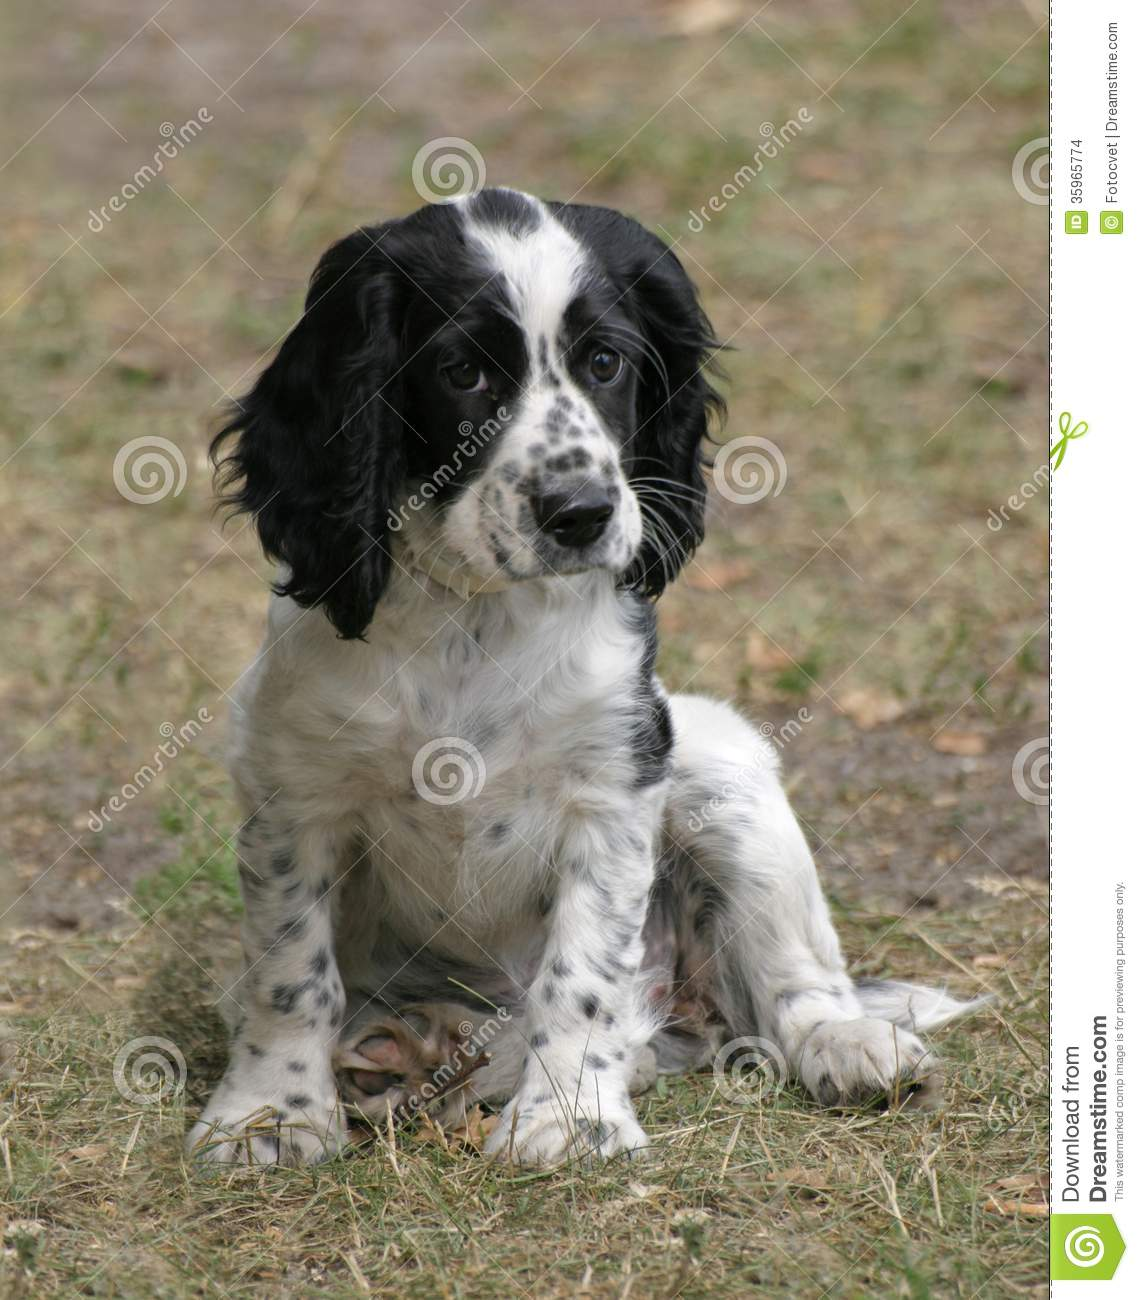 Russian Spaniel Puppies: Cute Black Cocker Spaniel Puppies Breed